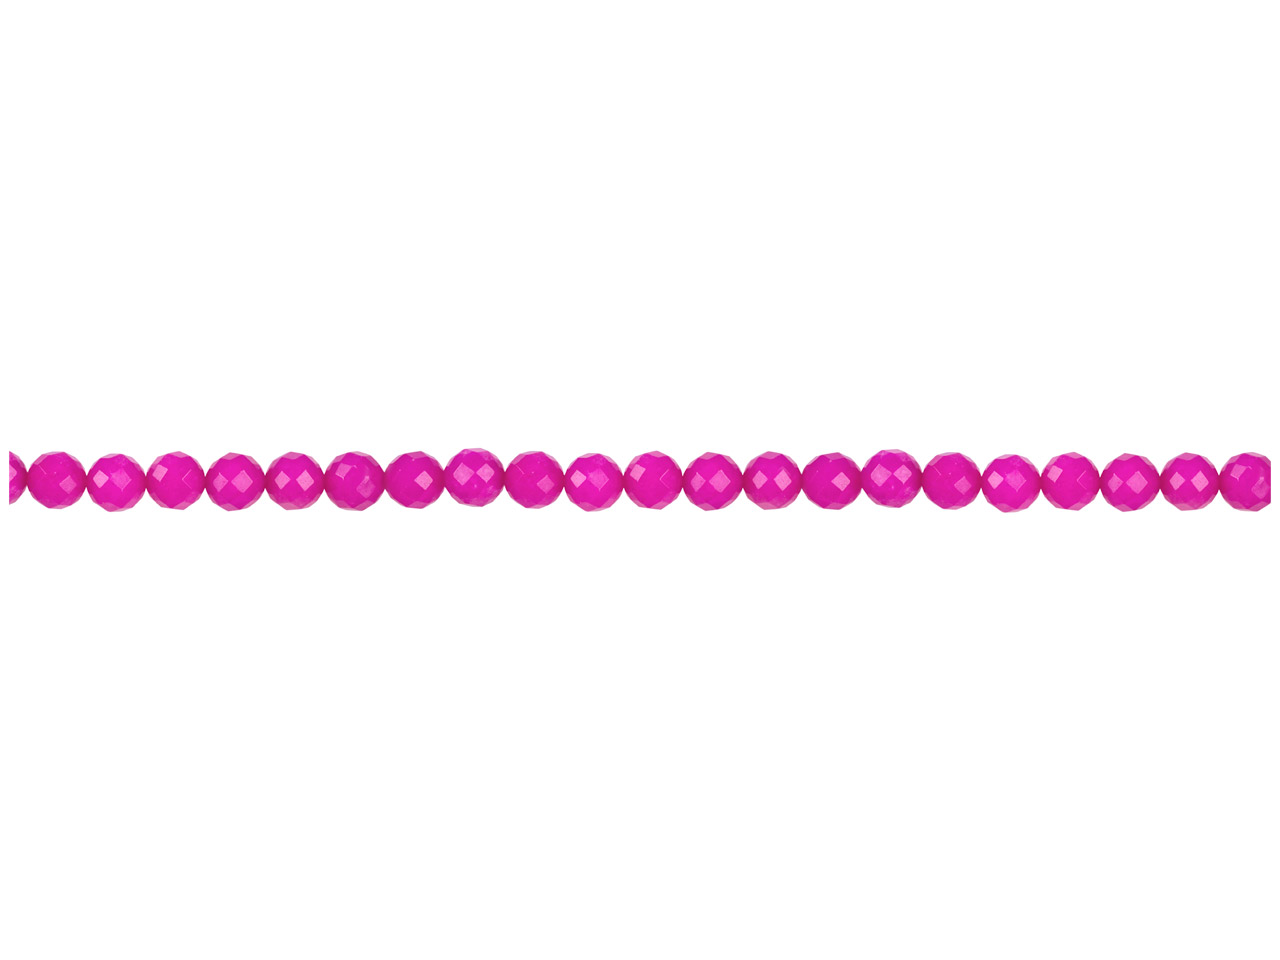 Dyed Pink Jade Faceted Semi        Precious Round Beads 6mm, 16